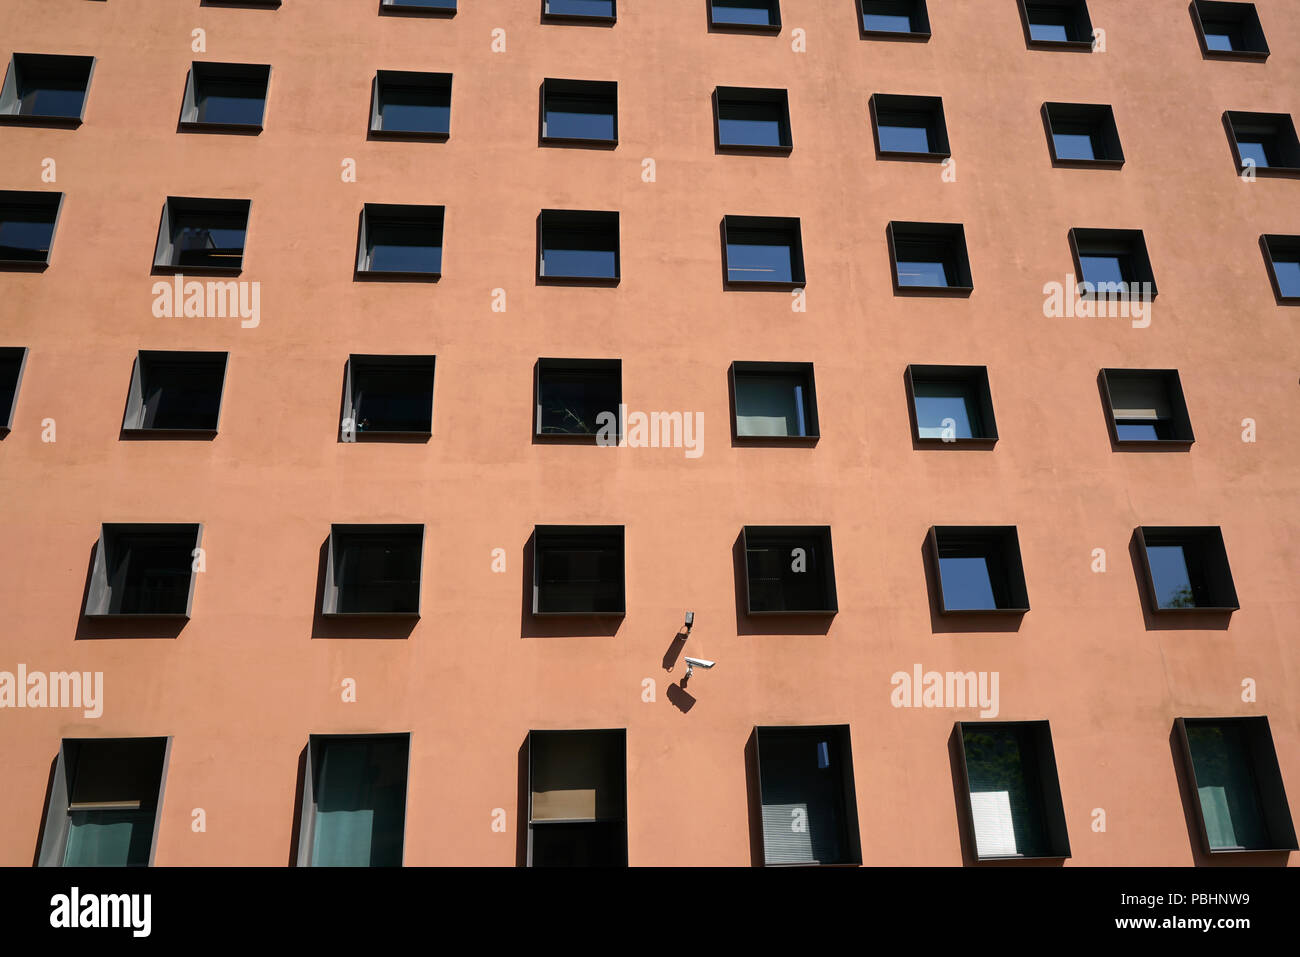 Facade of an office building in Berlin with security camera - Stock Image